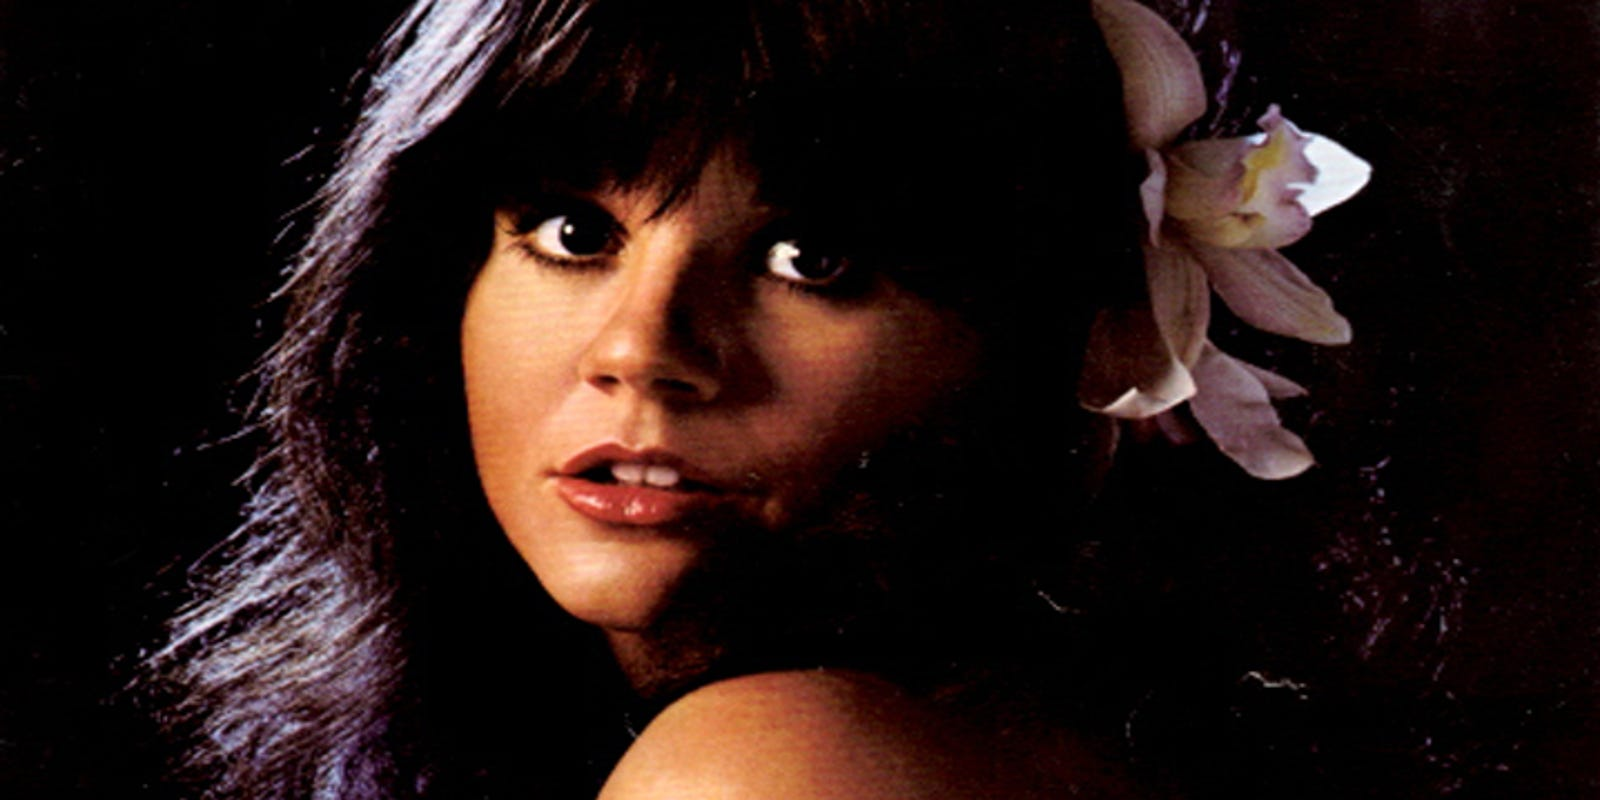 Linda Ronstadt will receive the Hispanic Heritage Foundation's Legend Award on PBS